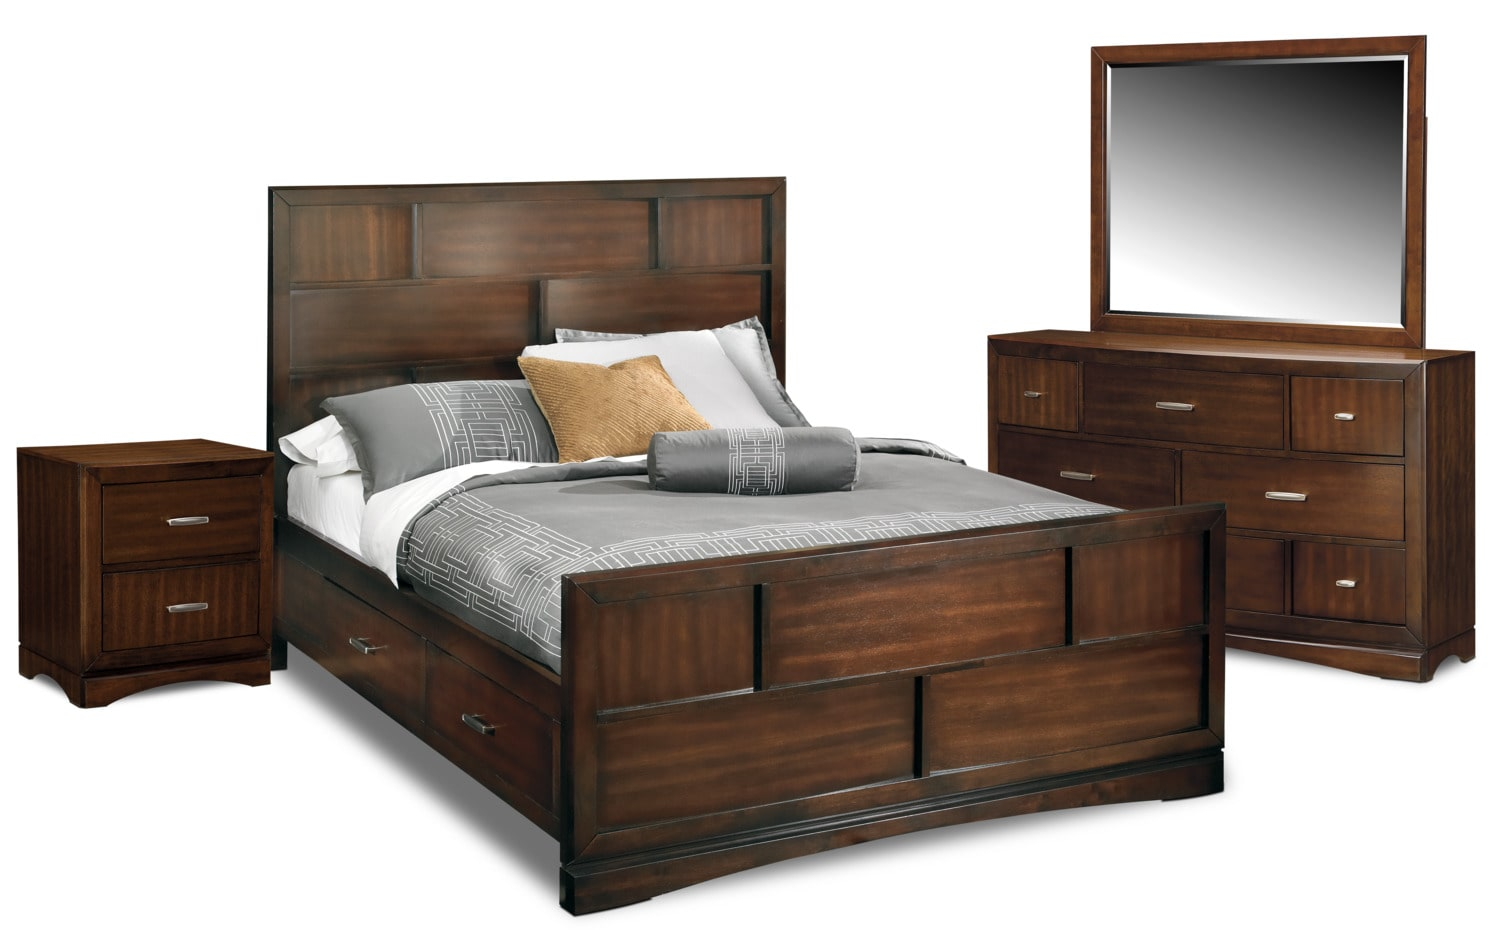 Toronto 6-Piece Storage Bedroom Set with Nightstand, Dresser and ...